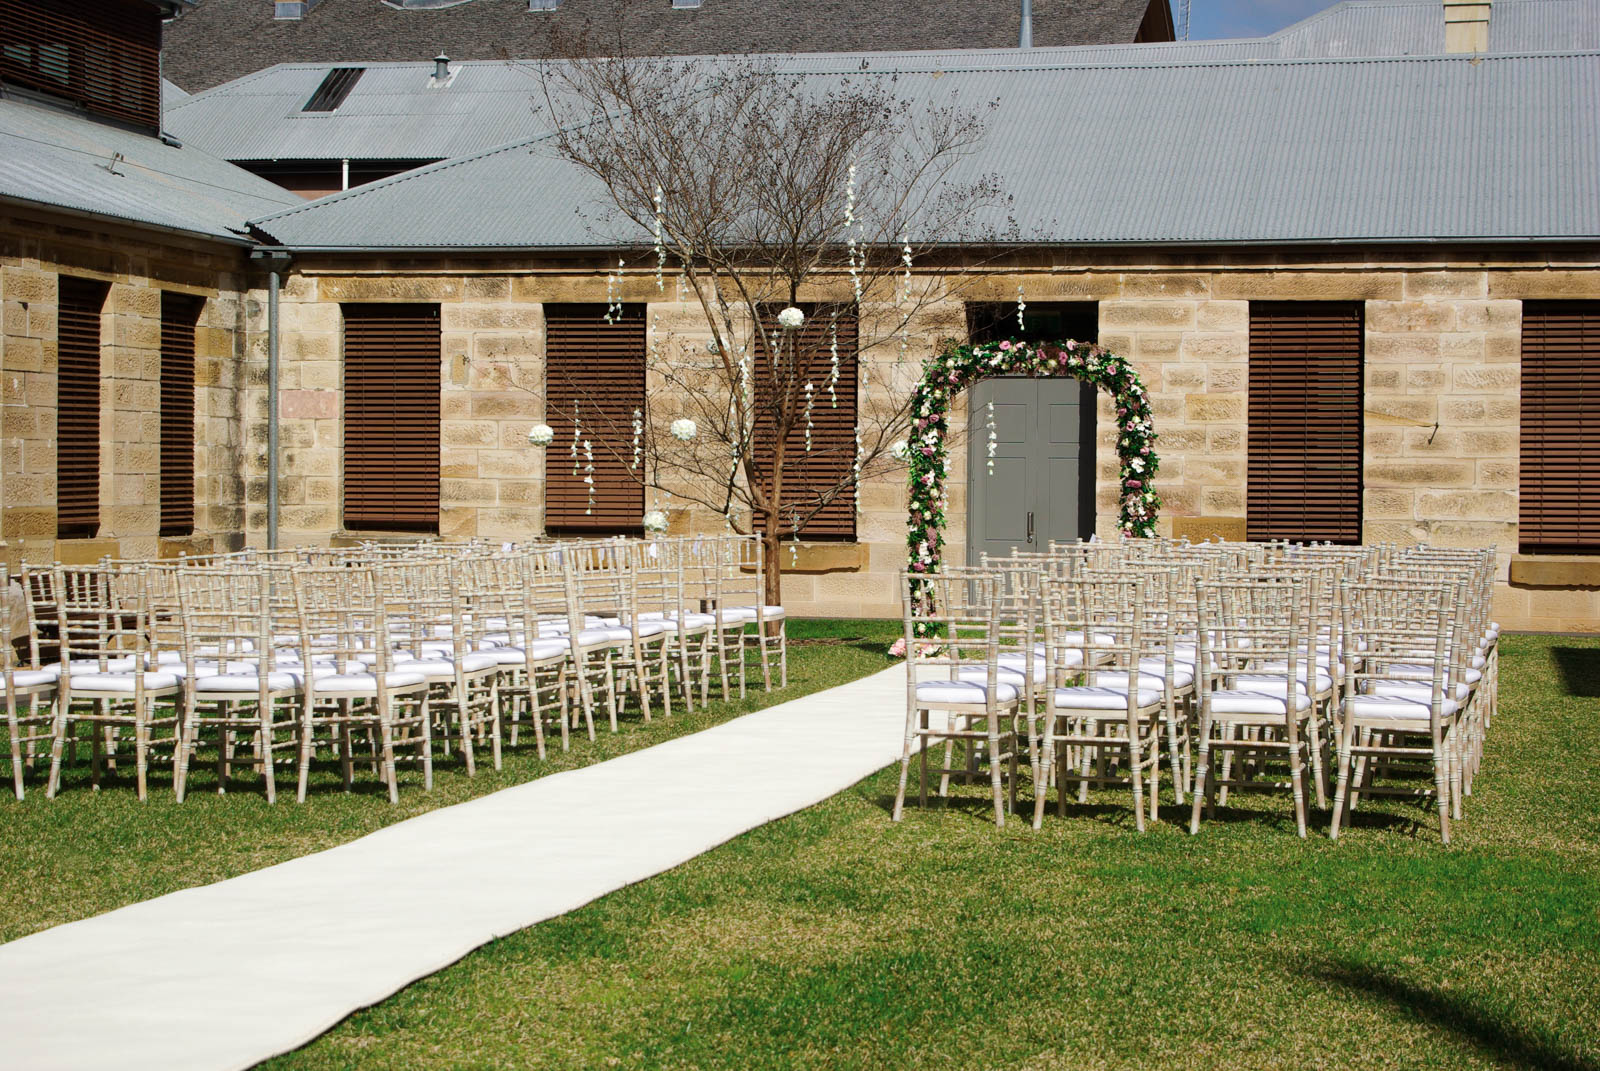 Weddings At The Mint Sydney Living Museums